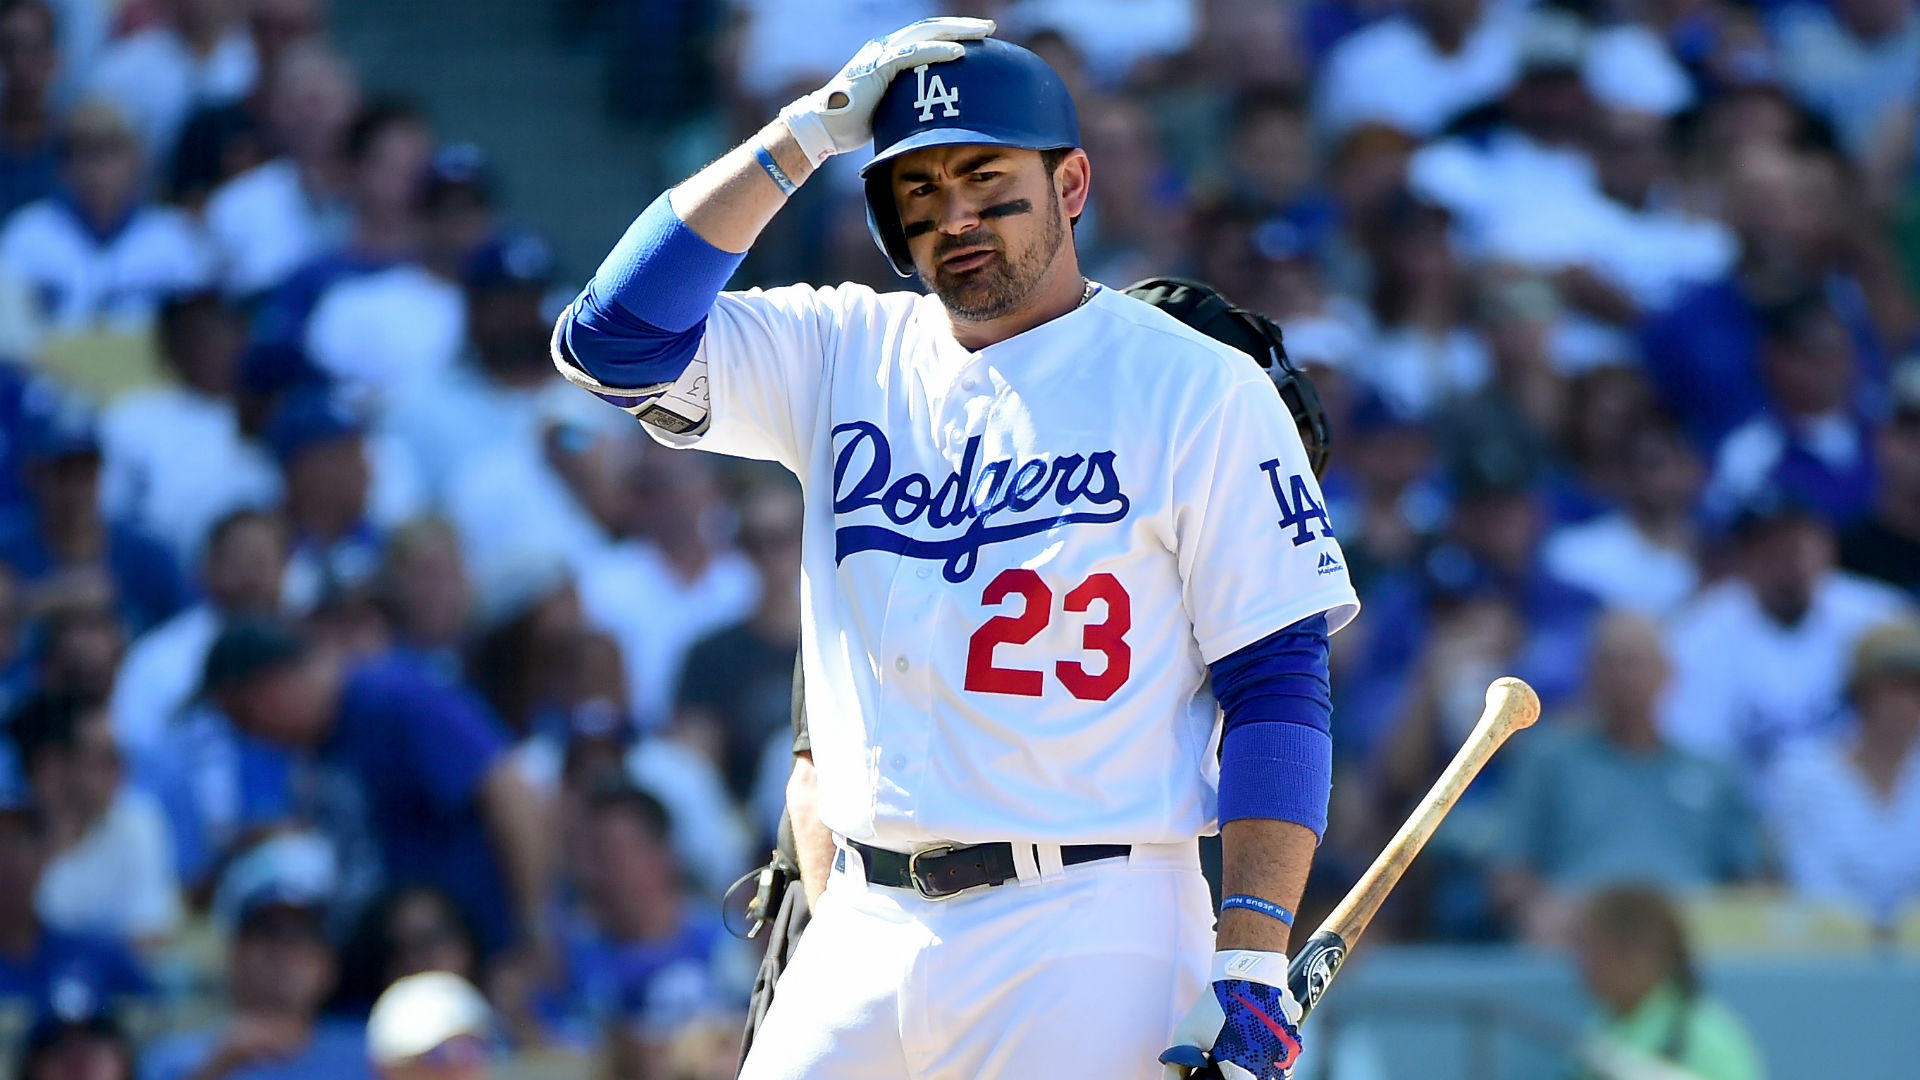 MLB free agent rumors: Mets consider Adrian Gonzalez, 35, as cheap 1B option